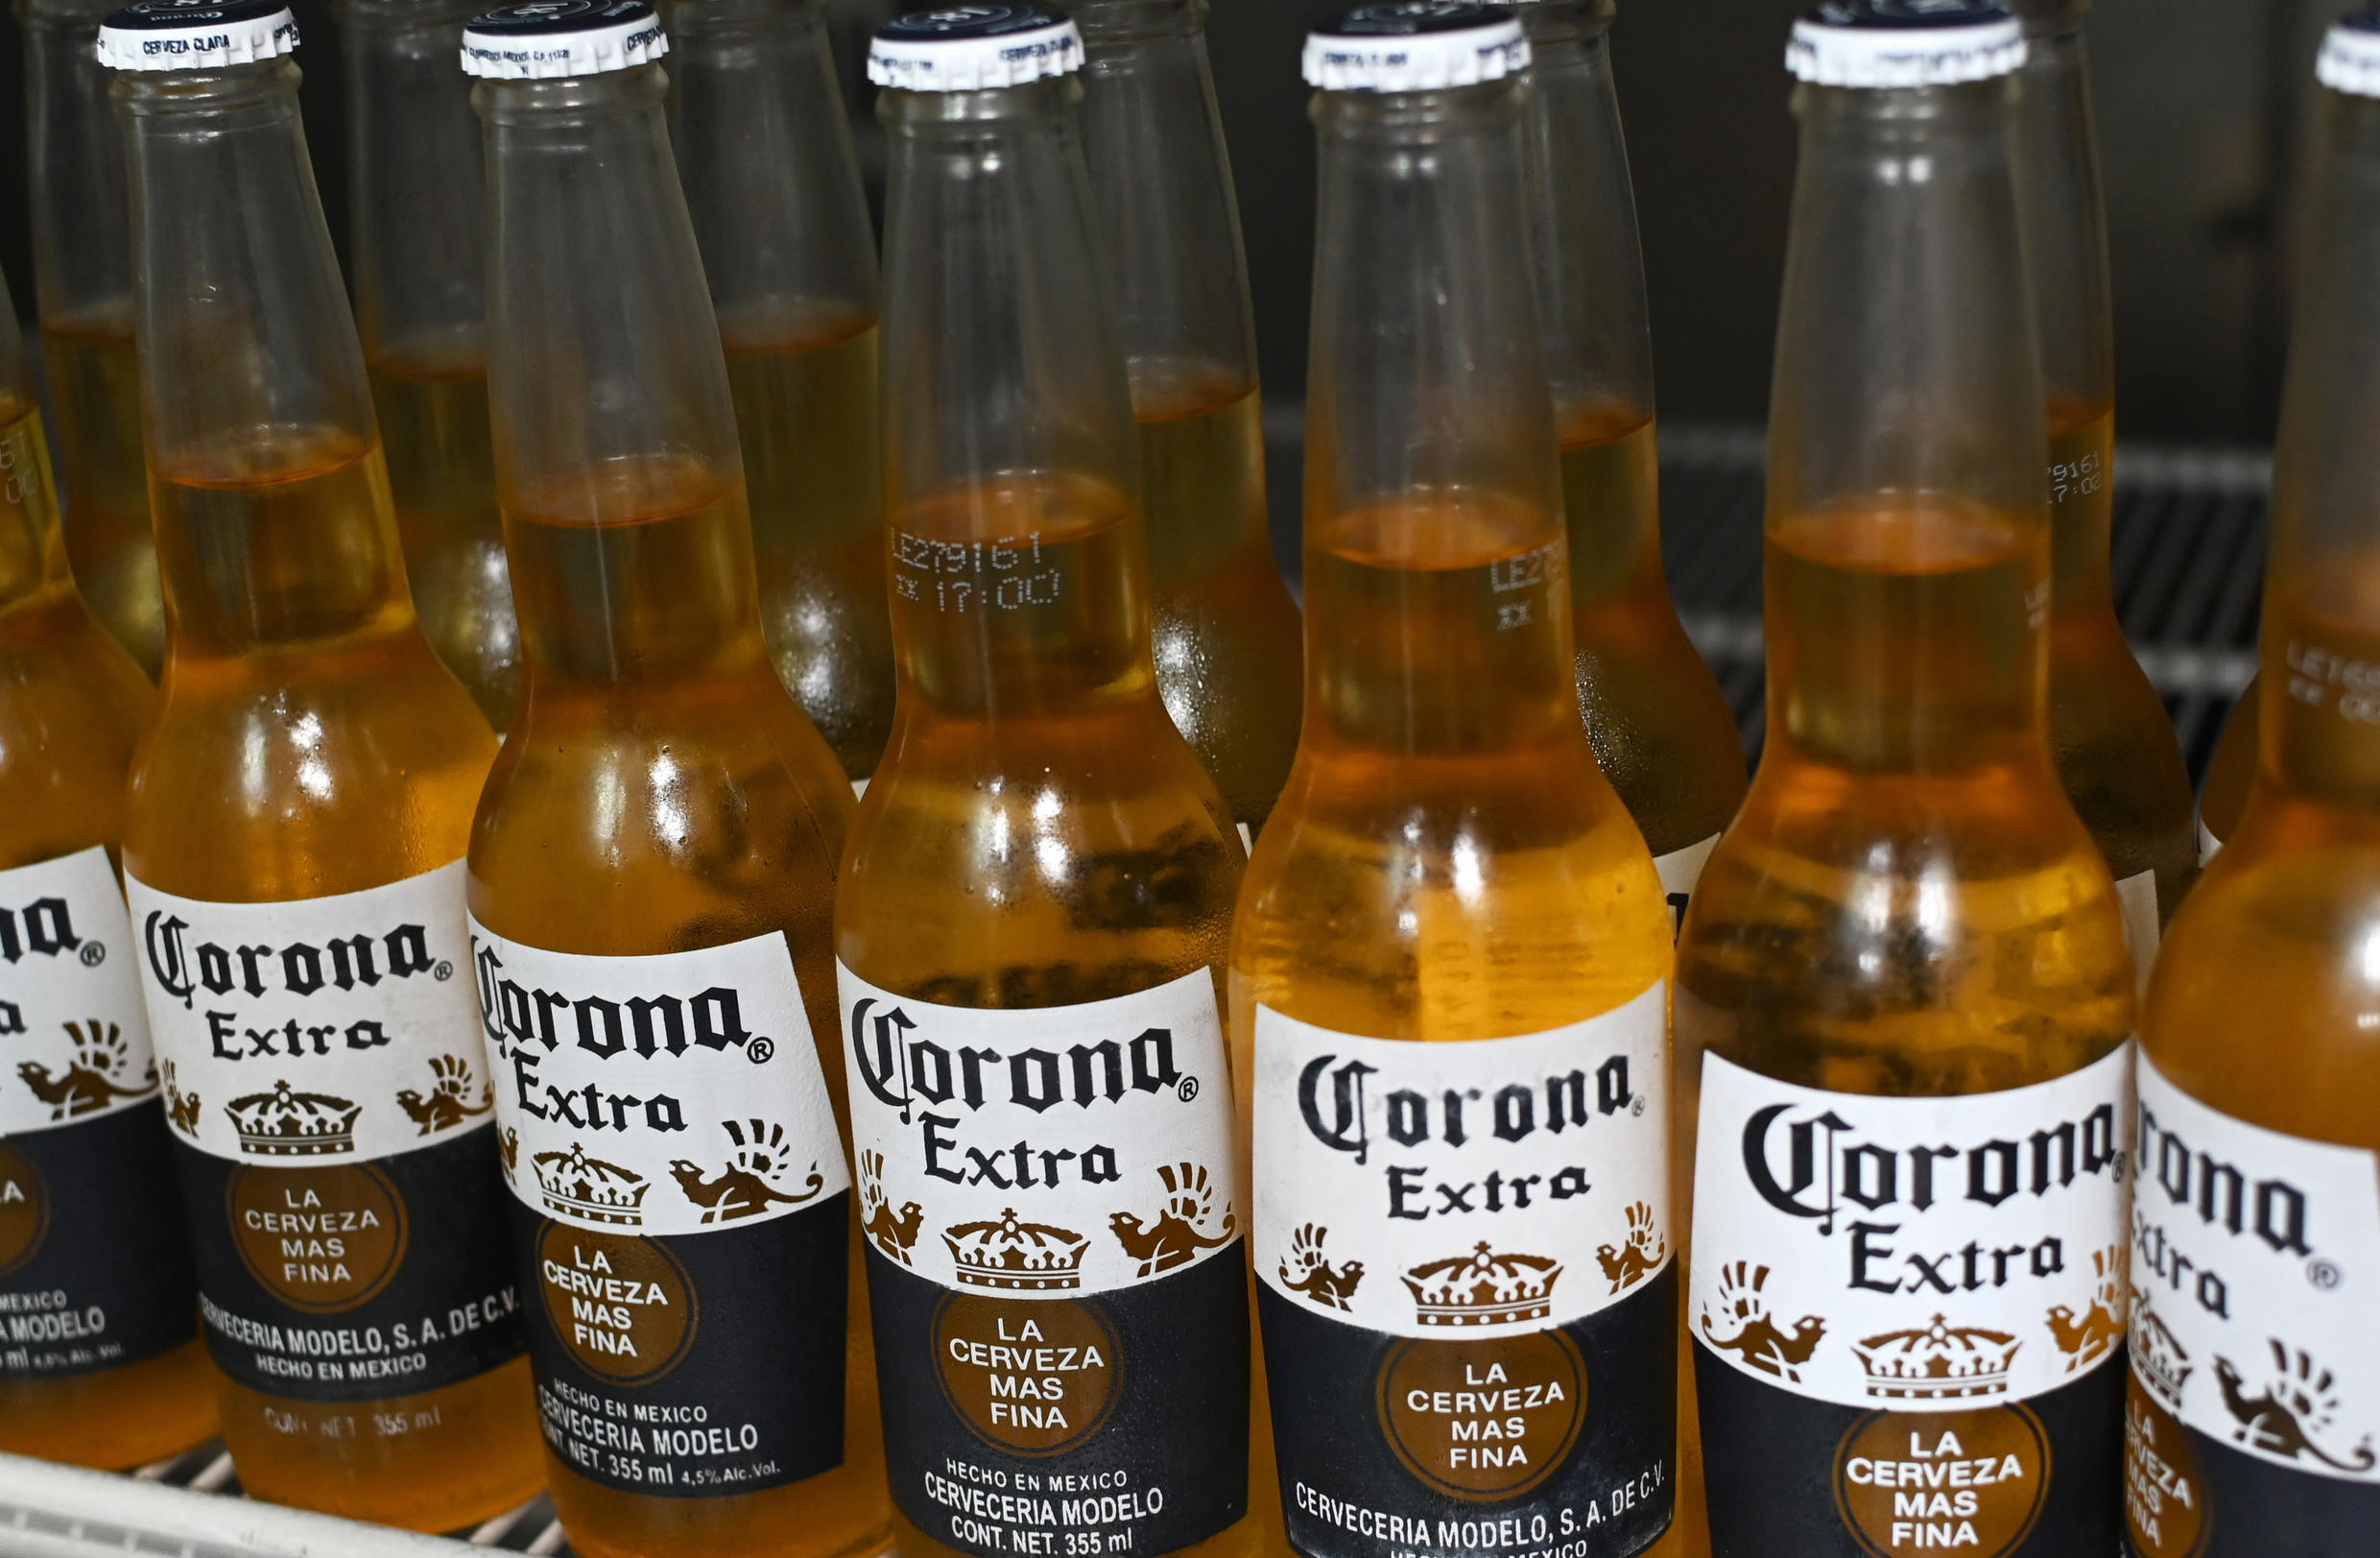 Since the start of the virus crisis, Corona beer has been the punchline of some questionable jokes and memes